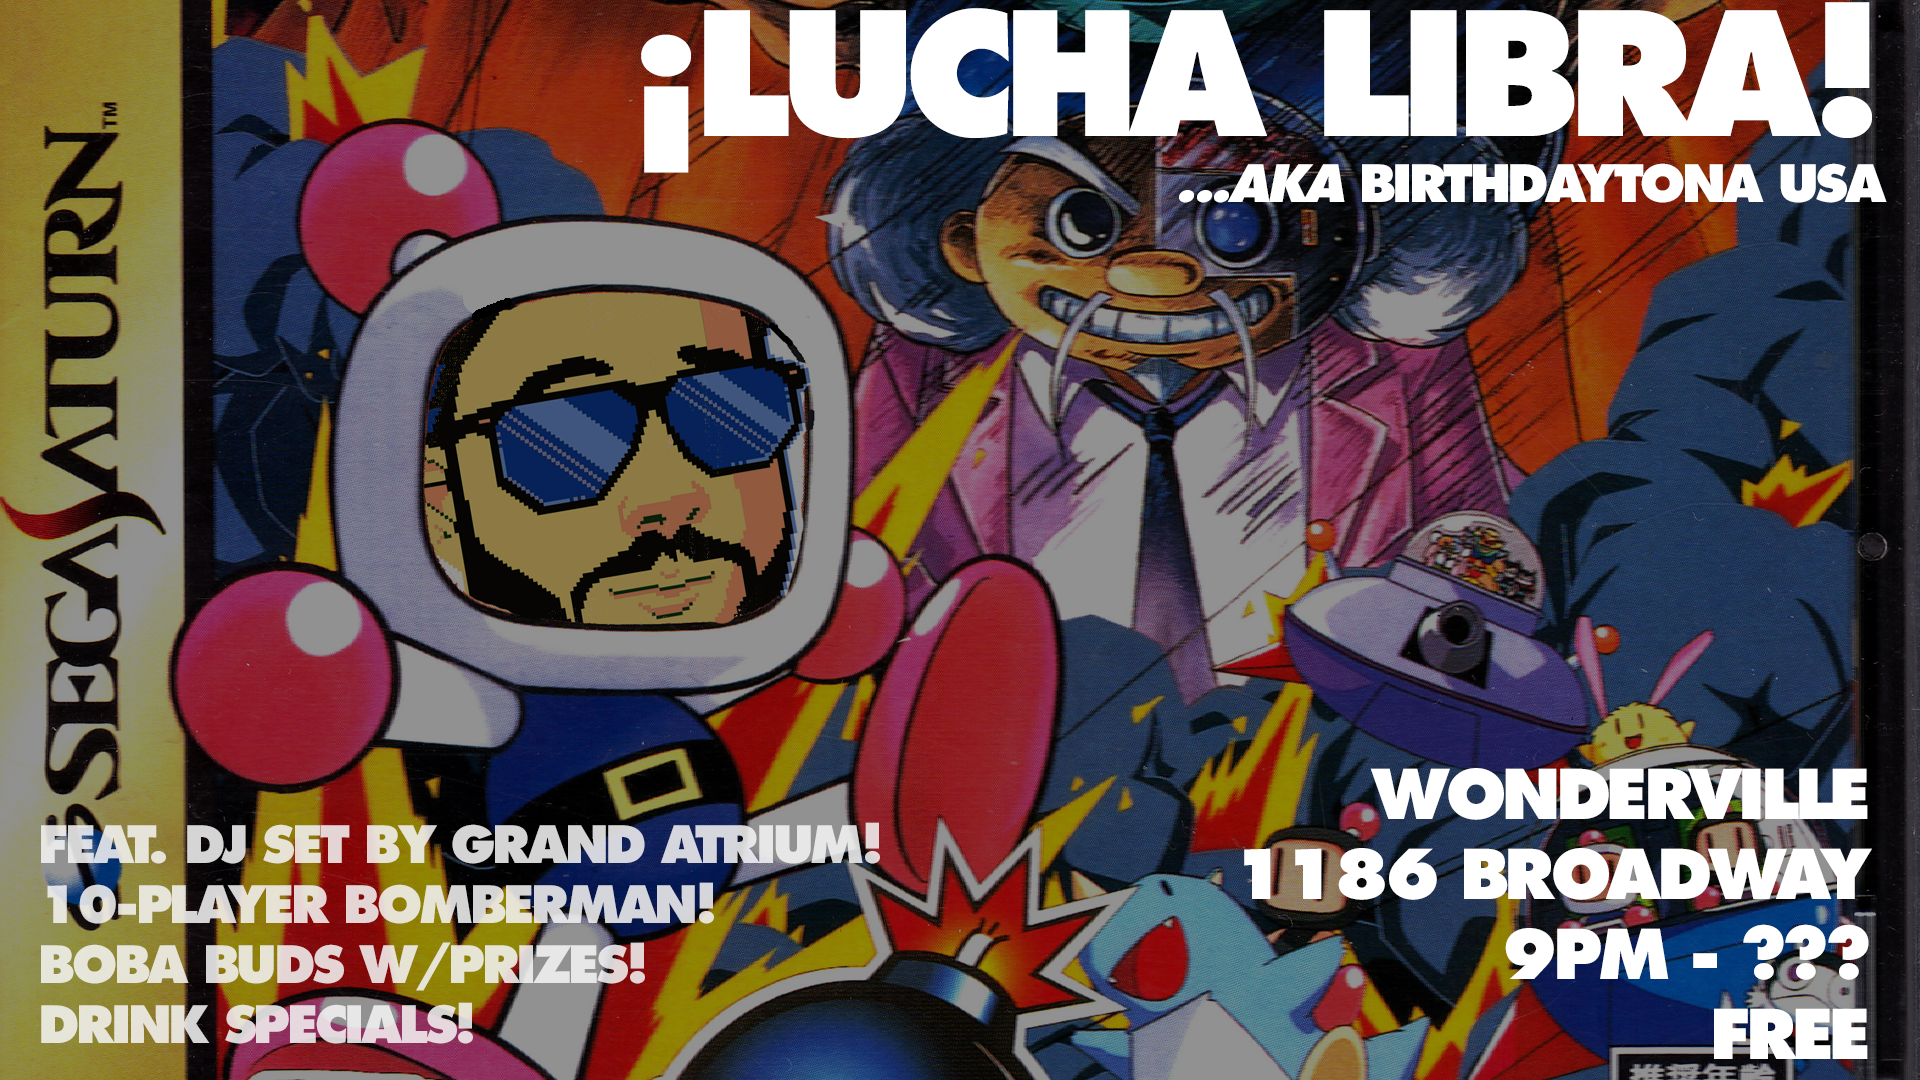 Tickets:  https://withfriends.co/event/2703759/lucha_libra_aka_birthdaytona_usa/